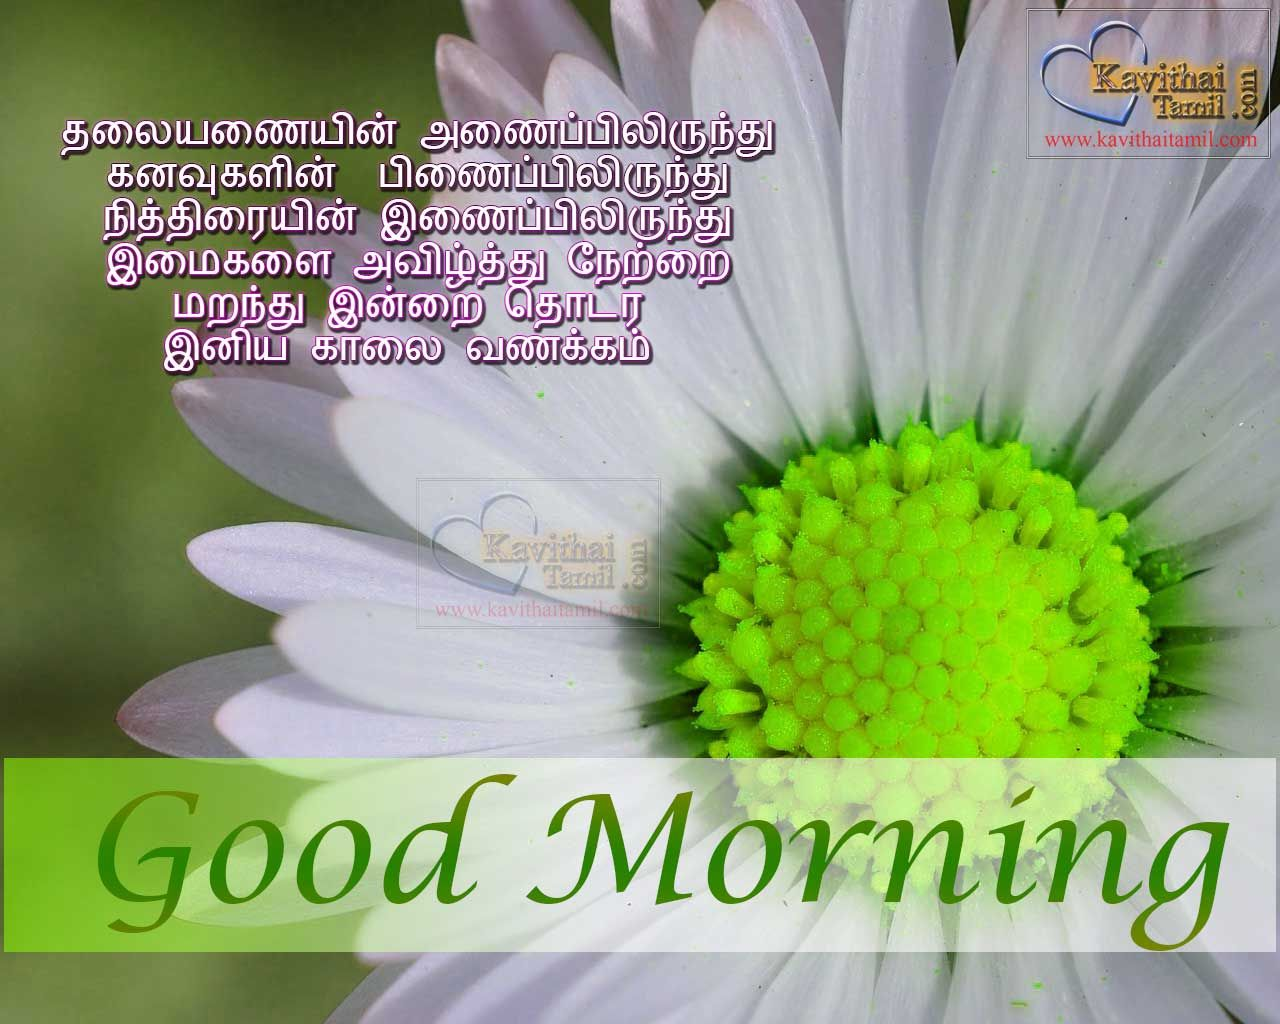 Super Good Morning Wishing Greetings In Tamil Language With Super